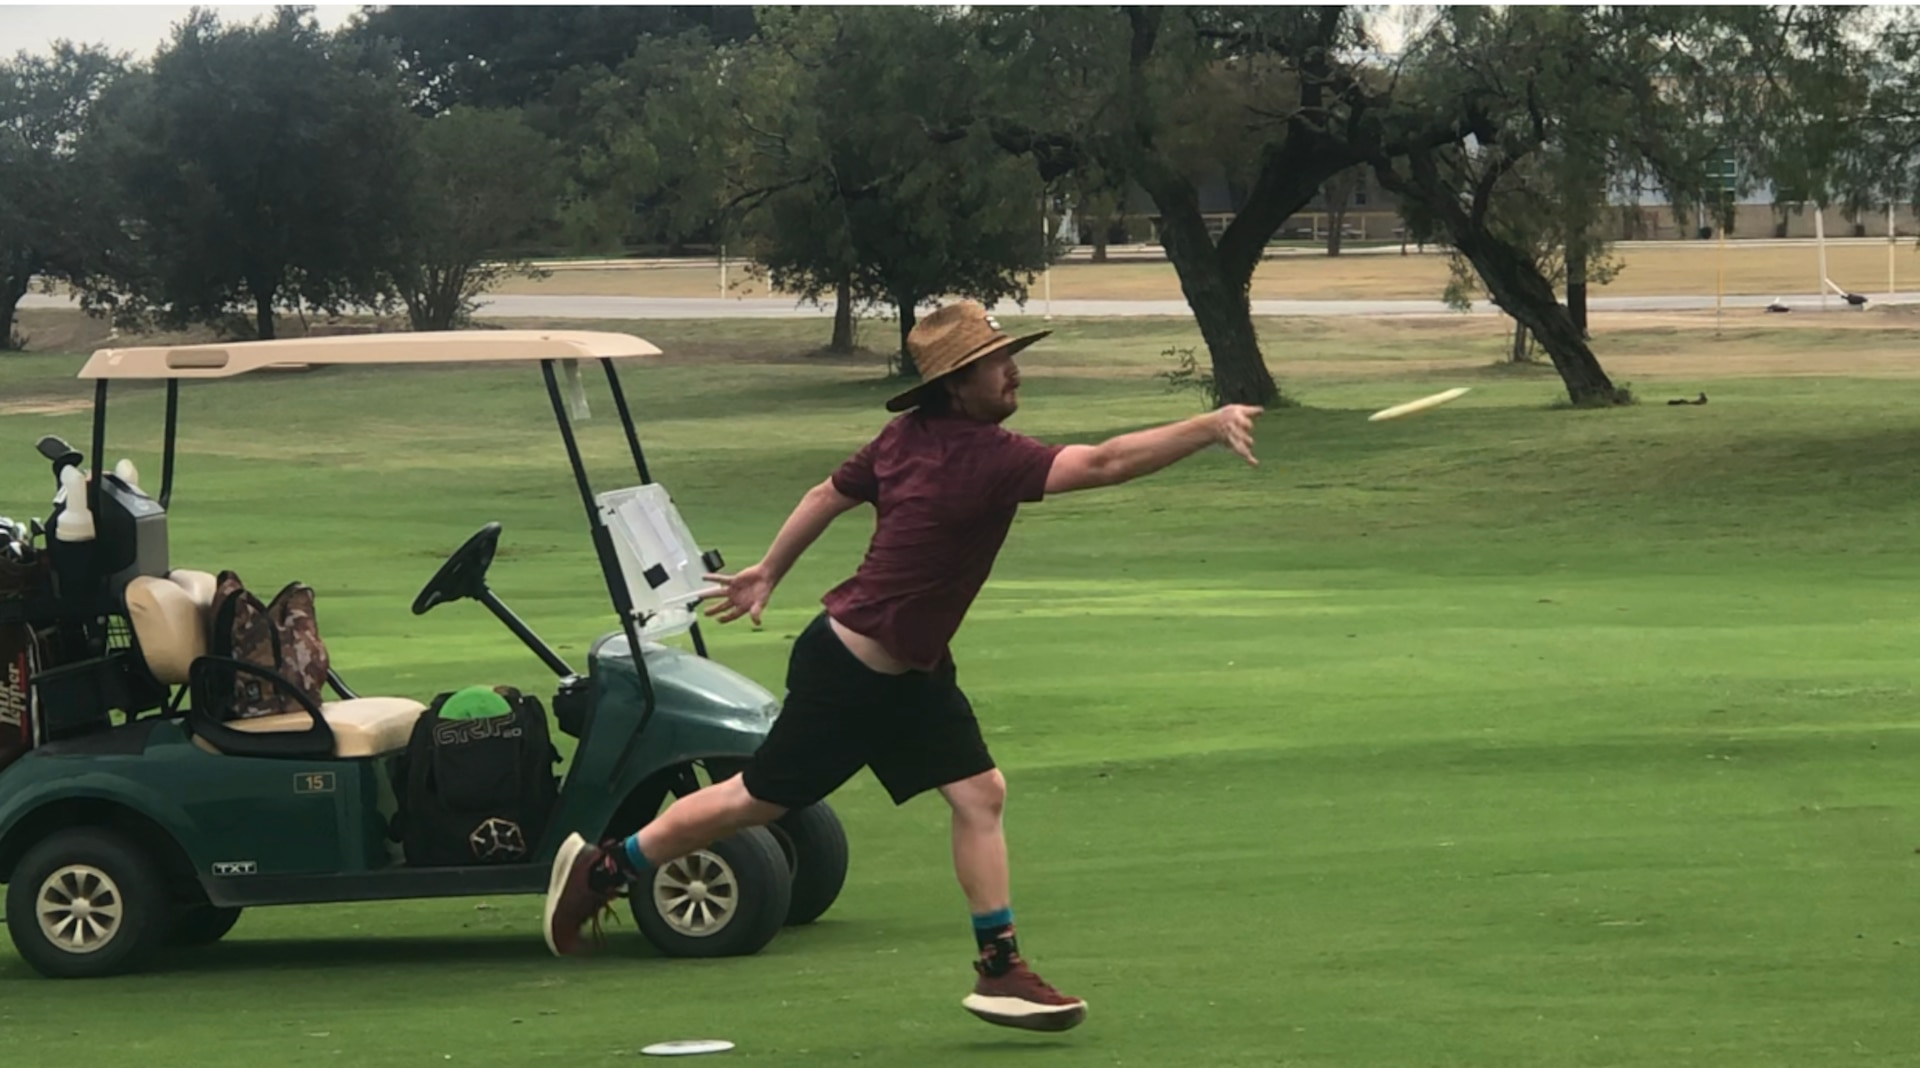 Taylor McCarty releases a disc during a disc golf tournament at the Joint Base San Antonio-Fort Sam Houston Golf Course Oct. 23. The first ever disc golf tournament for JBSA drew 38 players.